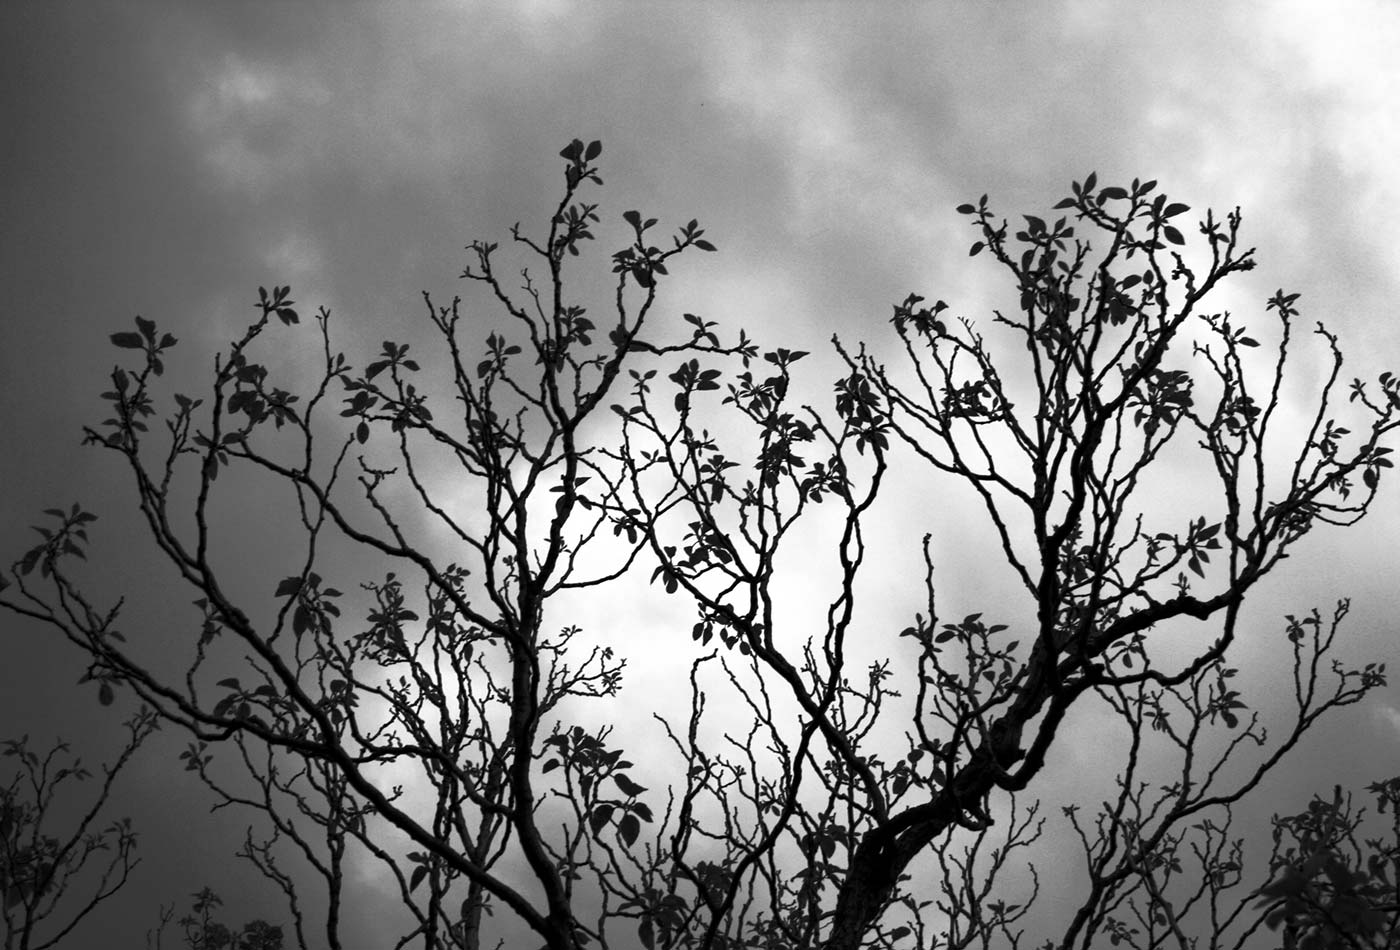 Tree with clouds in black and white.